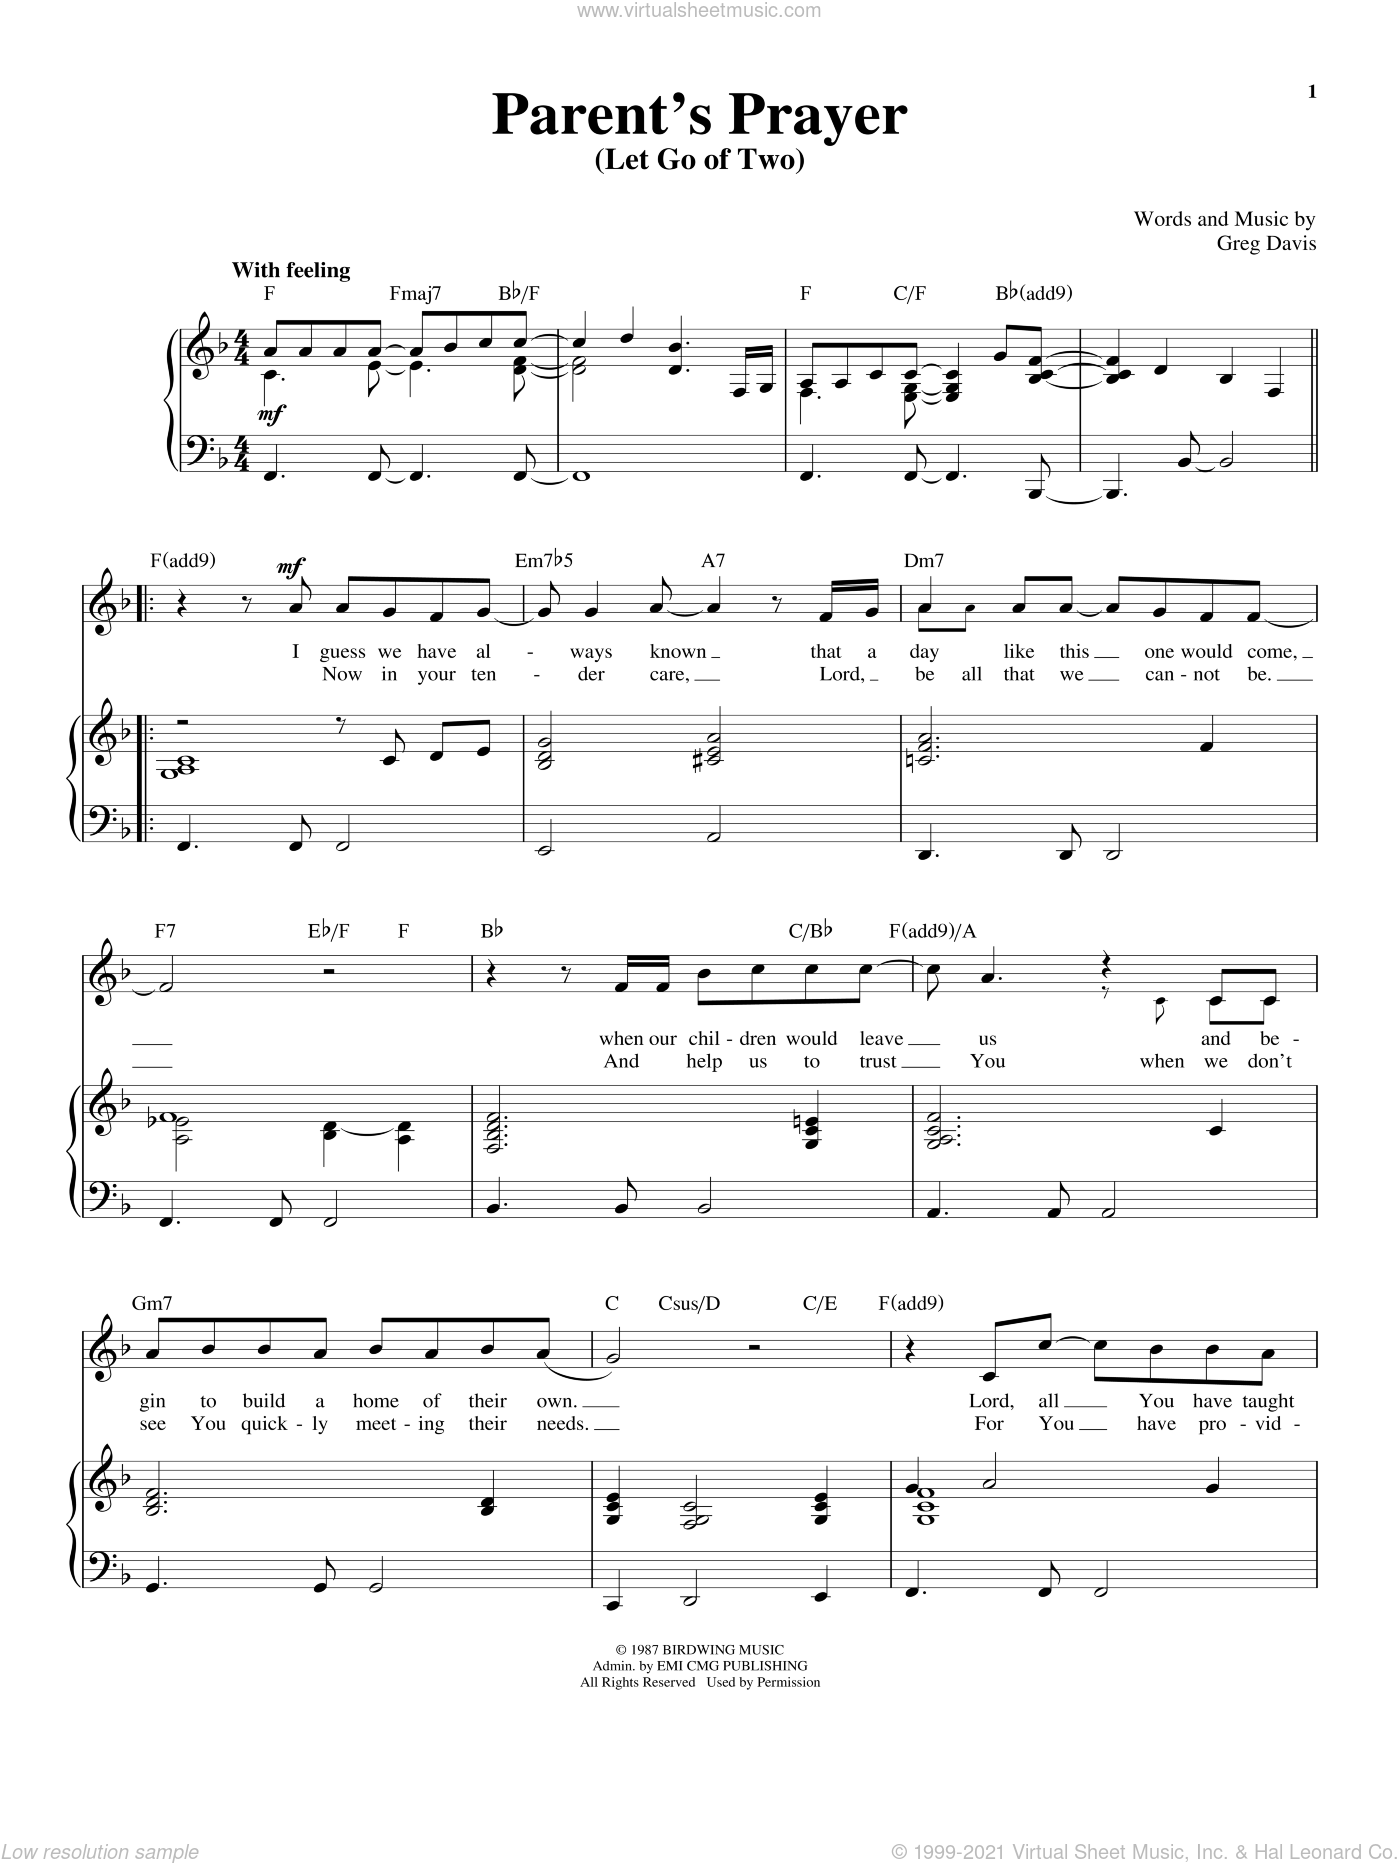 Parent's Prayer (Let Go Of Two) sheet music for voice and piano by Greg Davis and Richard Walters, wedding score, intermediate skill level